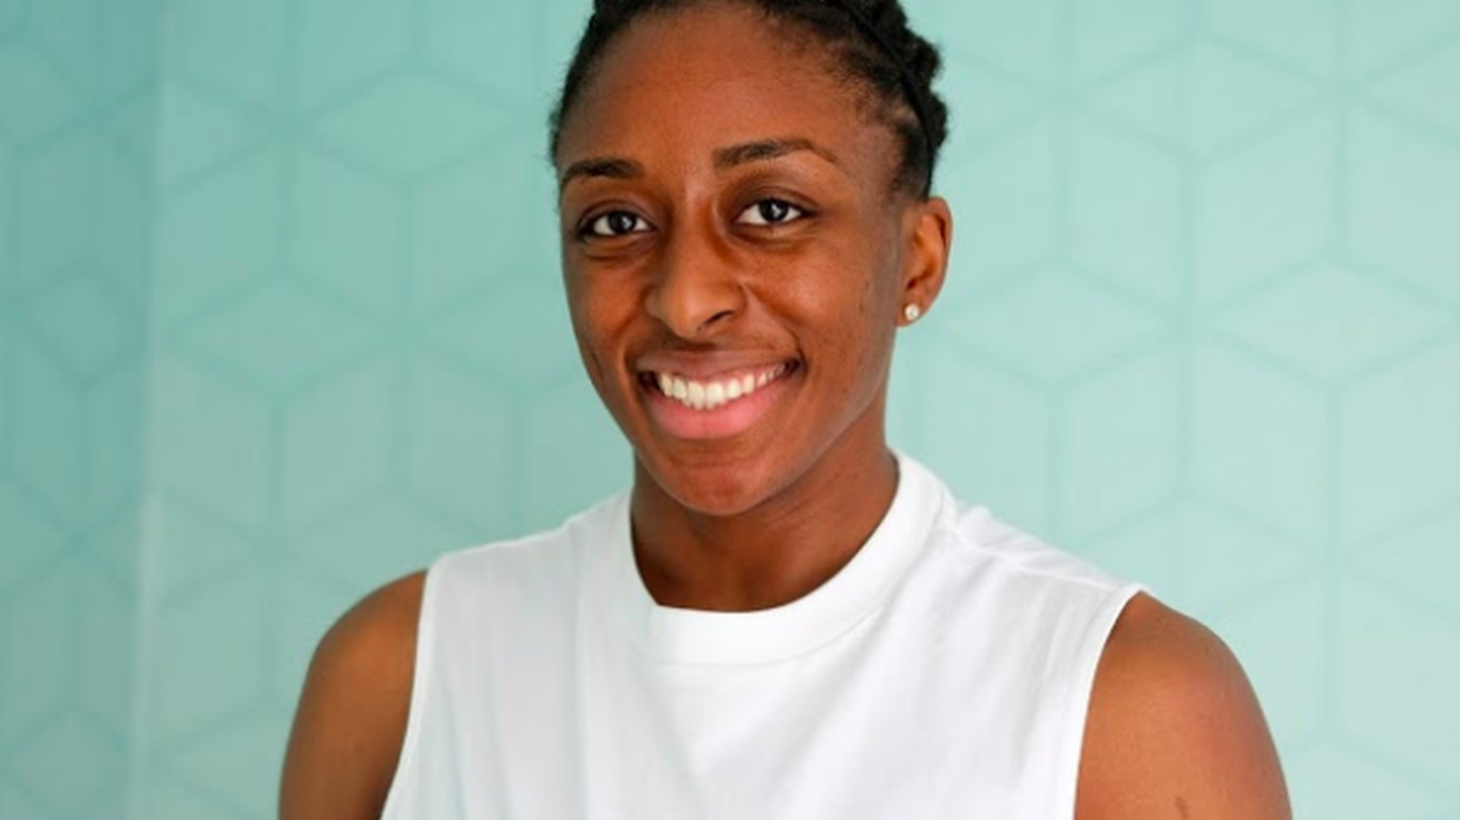 The LA Sparks are considered one of the top teams in the WNBA. Nneka Ogwumike is a power forward on the team. She says the pay is so low that many women play abroad in the off-season. She herself plays in Russia in the winter.